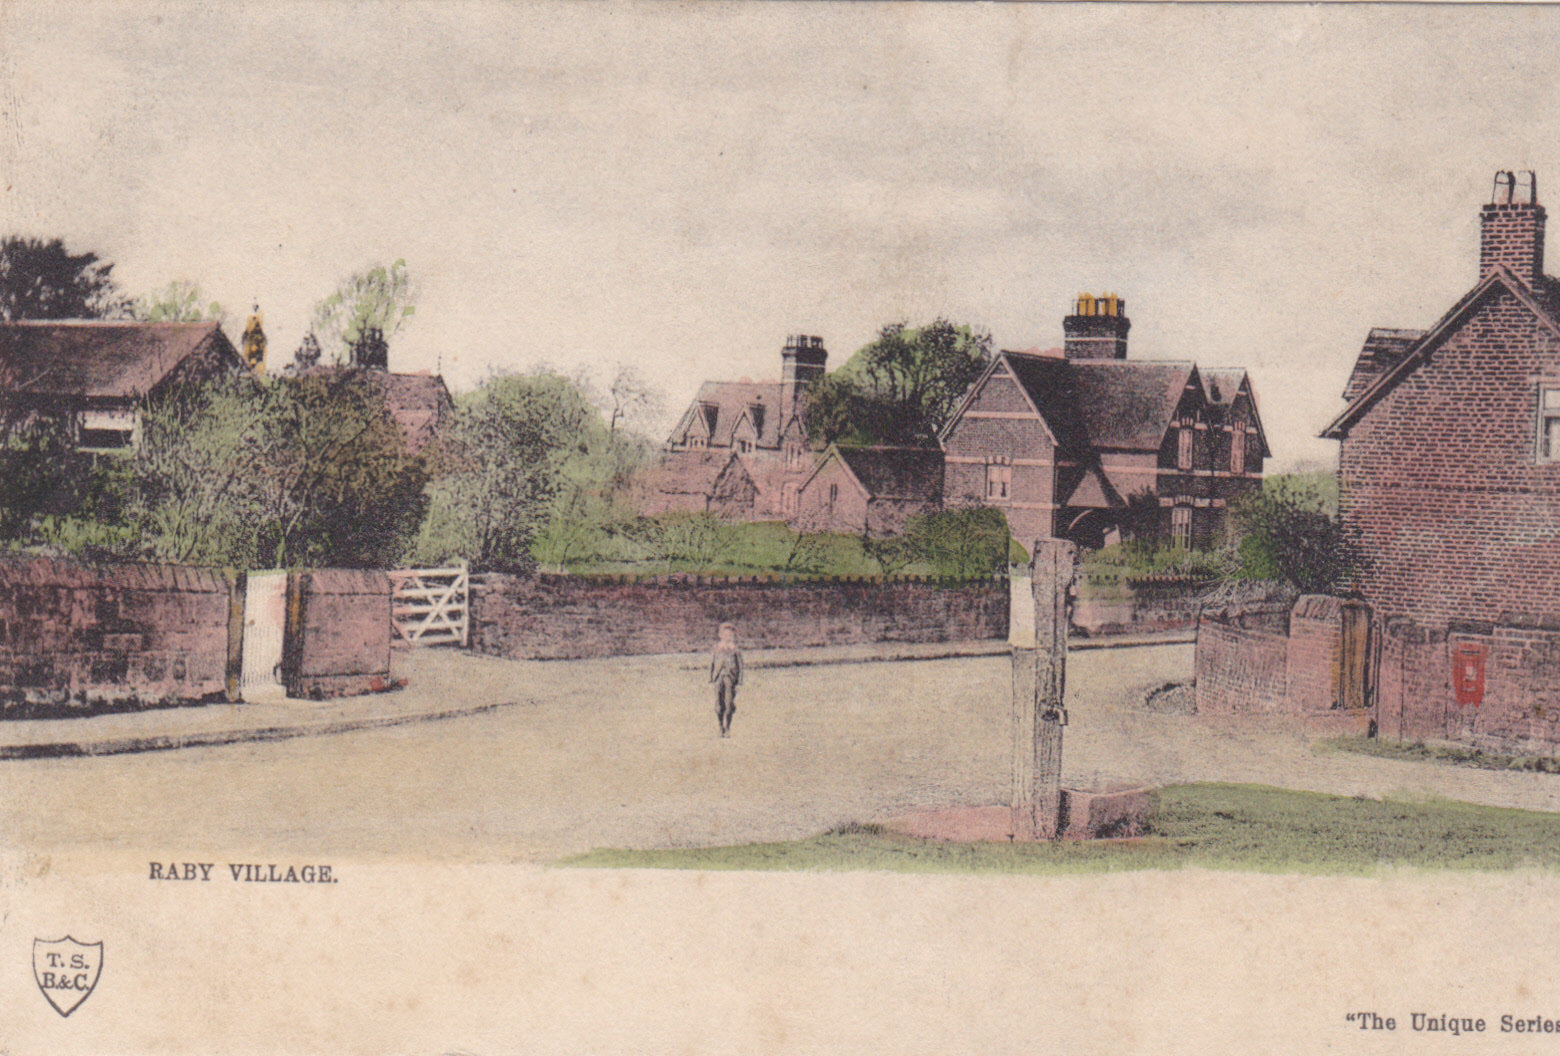 Raby Village, Wirral, old postcard